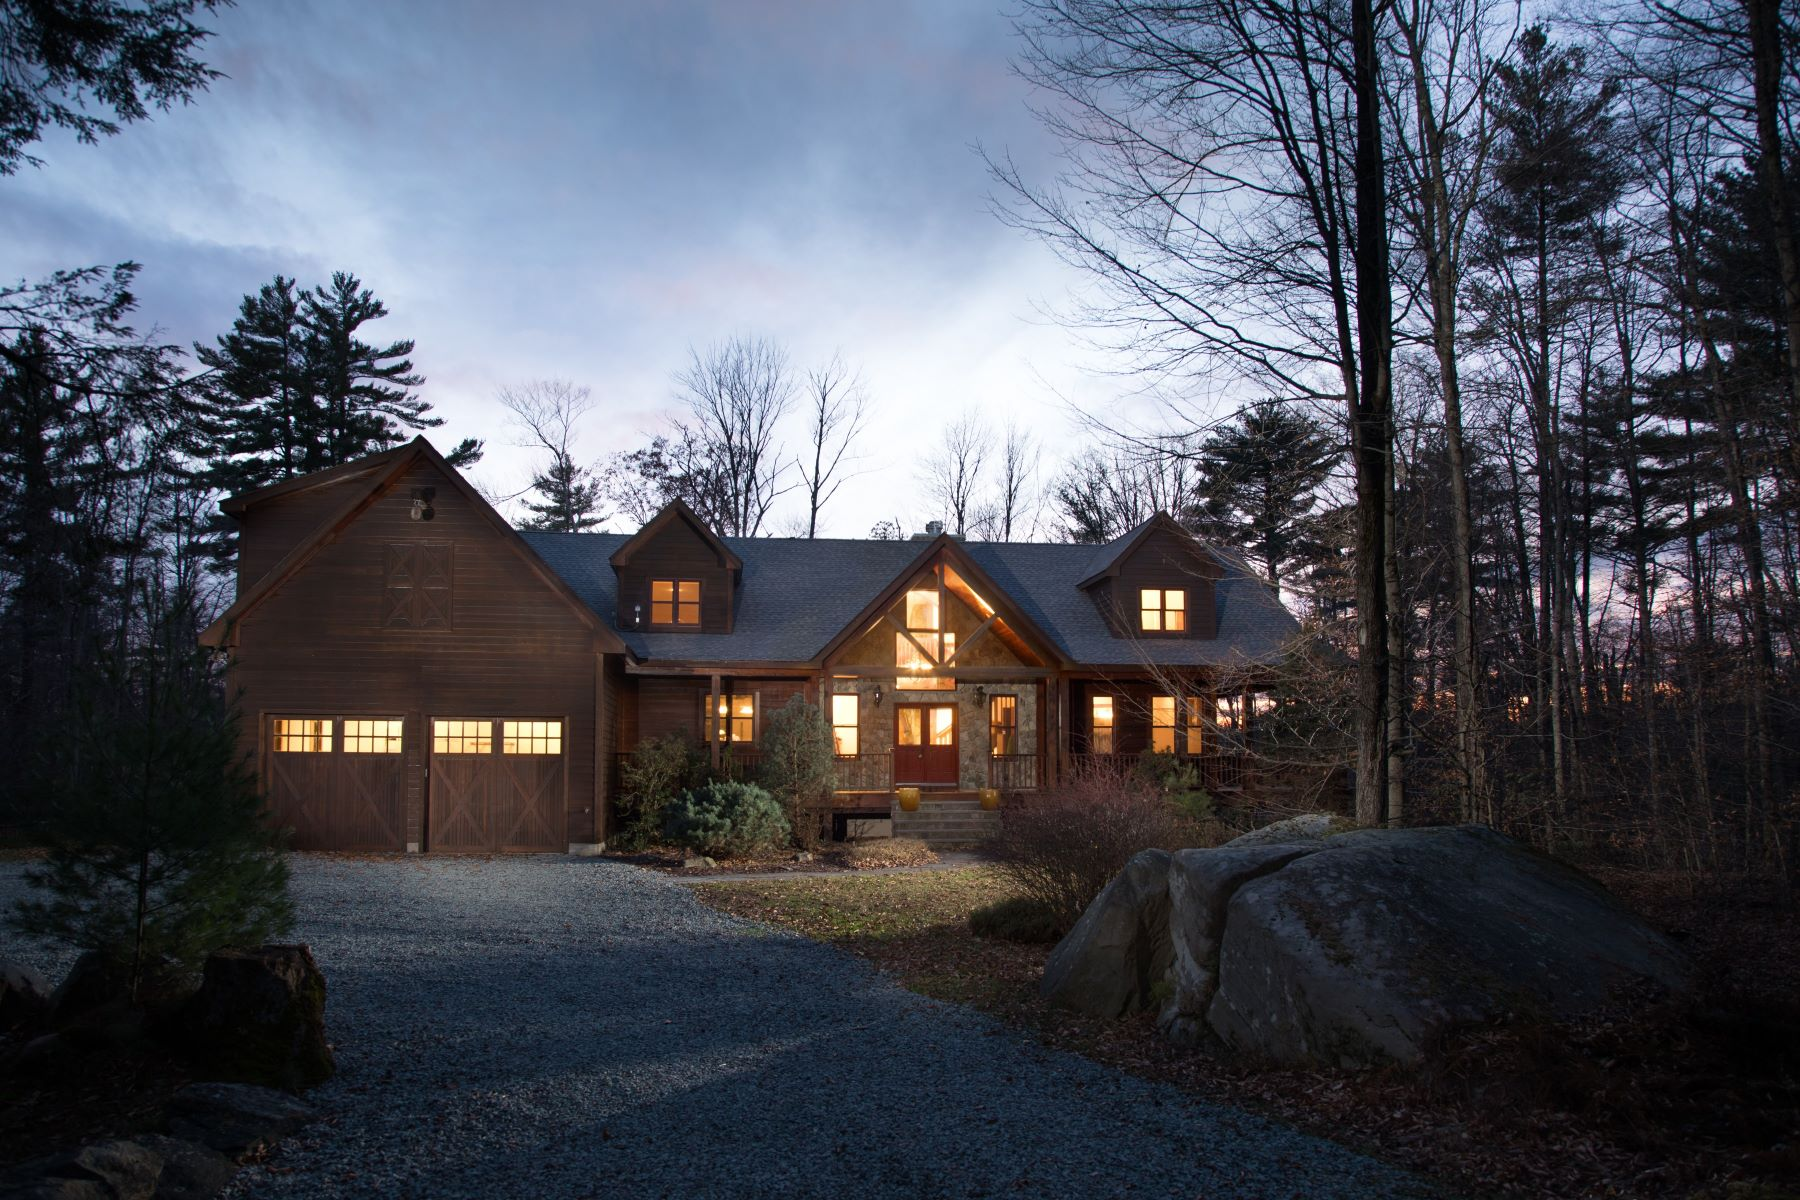 Single Family Homes for Sale at Majestic Wooded Paradise at The Chapin Estate 252 Woodstone Trl Bethel, New York 12720 United States